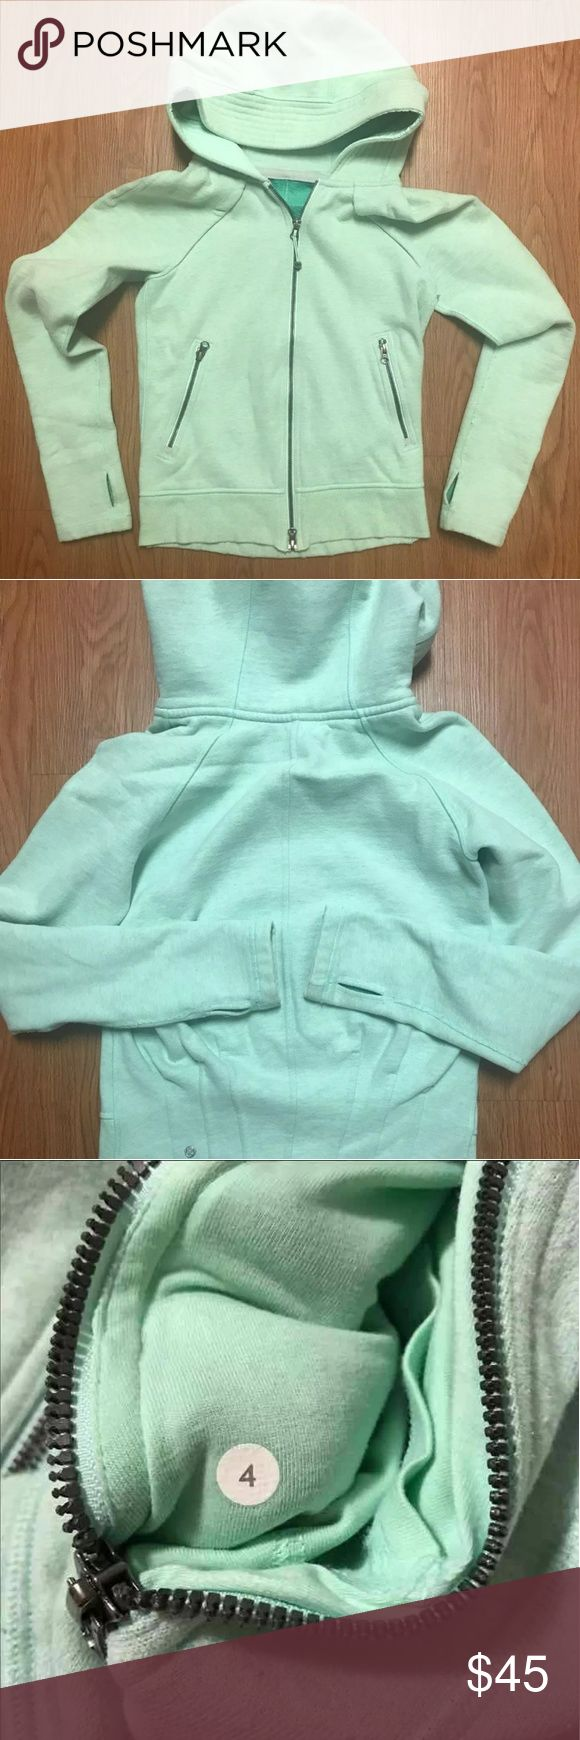 Lululemon Mint Jacket Used & in great condition.  Size 4. Color Mint.   Price is negotiable and bundles are welcome ♡. lululemon athletica Jackets & Coats